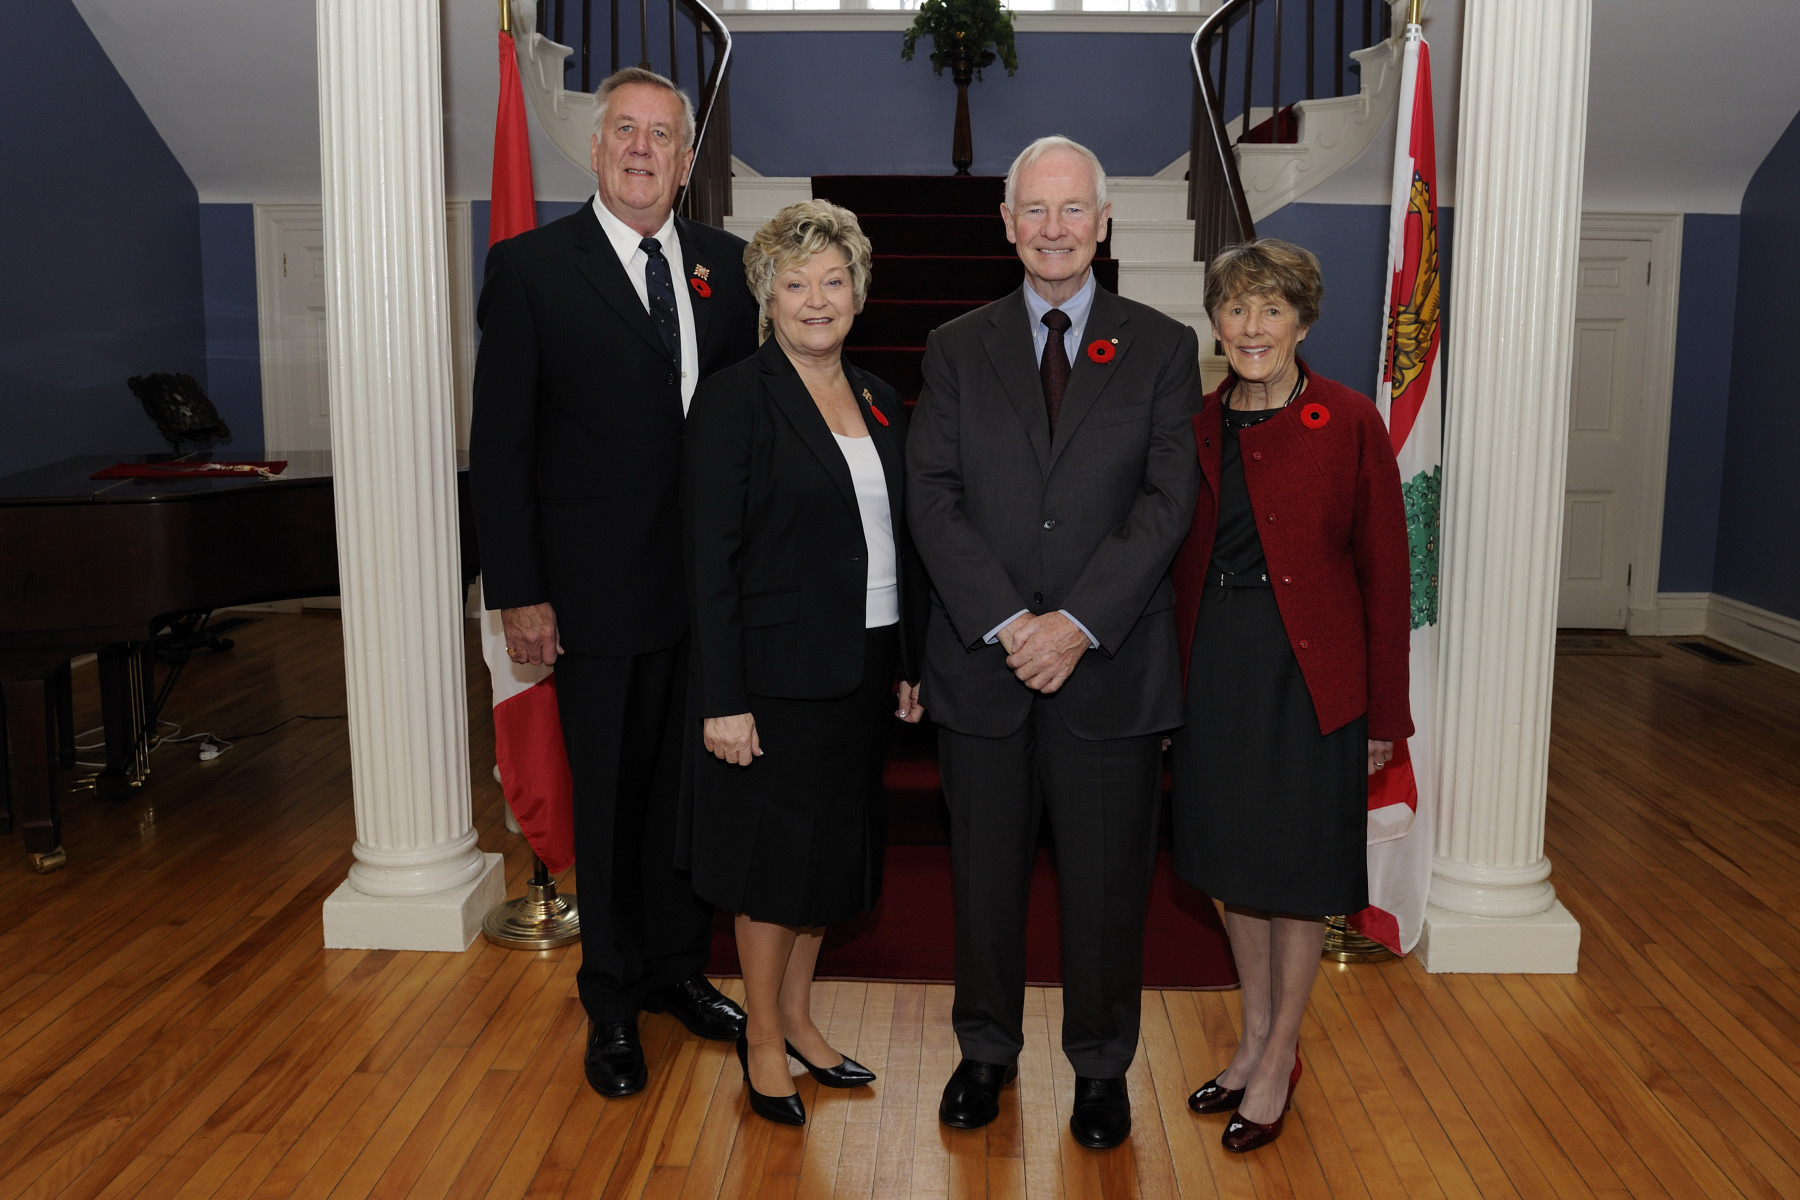 Upon their arrival in Prince Edward Island, Their Excellencies the Right Honourable David Johnston, Governor General of Canada, and Mrs. Sharon Johston met with Their Honours the Honourable Barbara A. Hagerman, Lieutenant-Governor of Prince Edward Island, and Mr. Nelson Hagerman at Government House in Charlottetown.